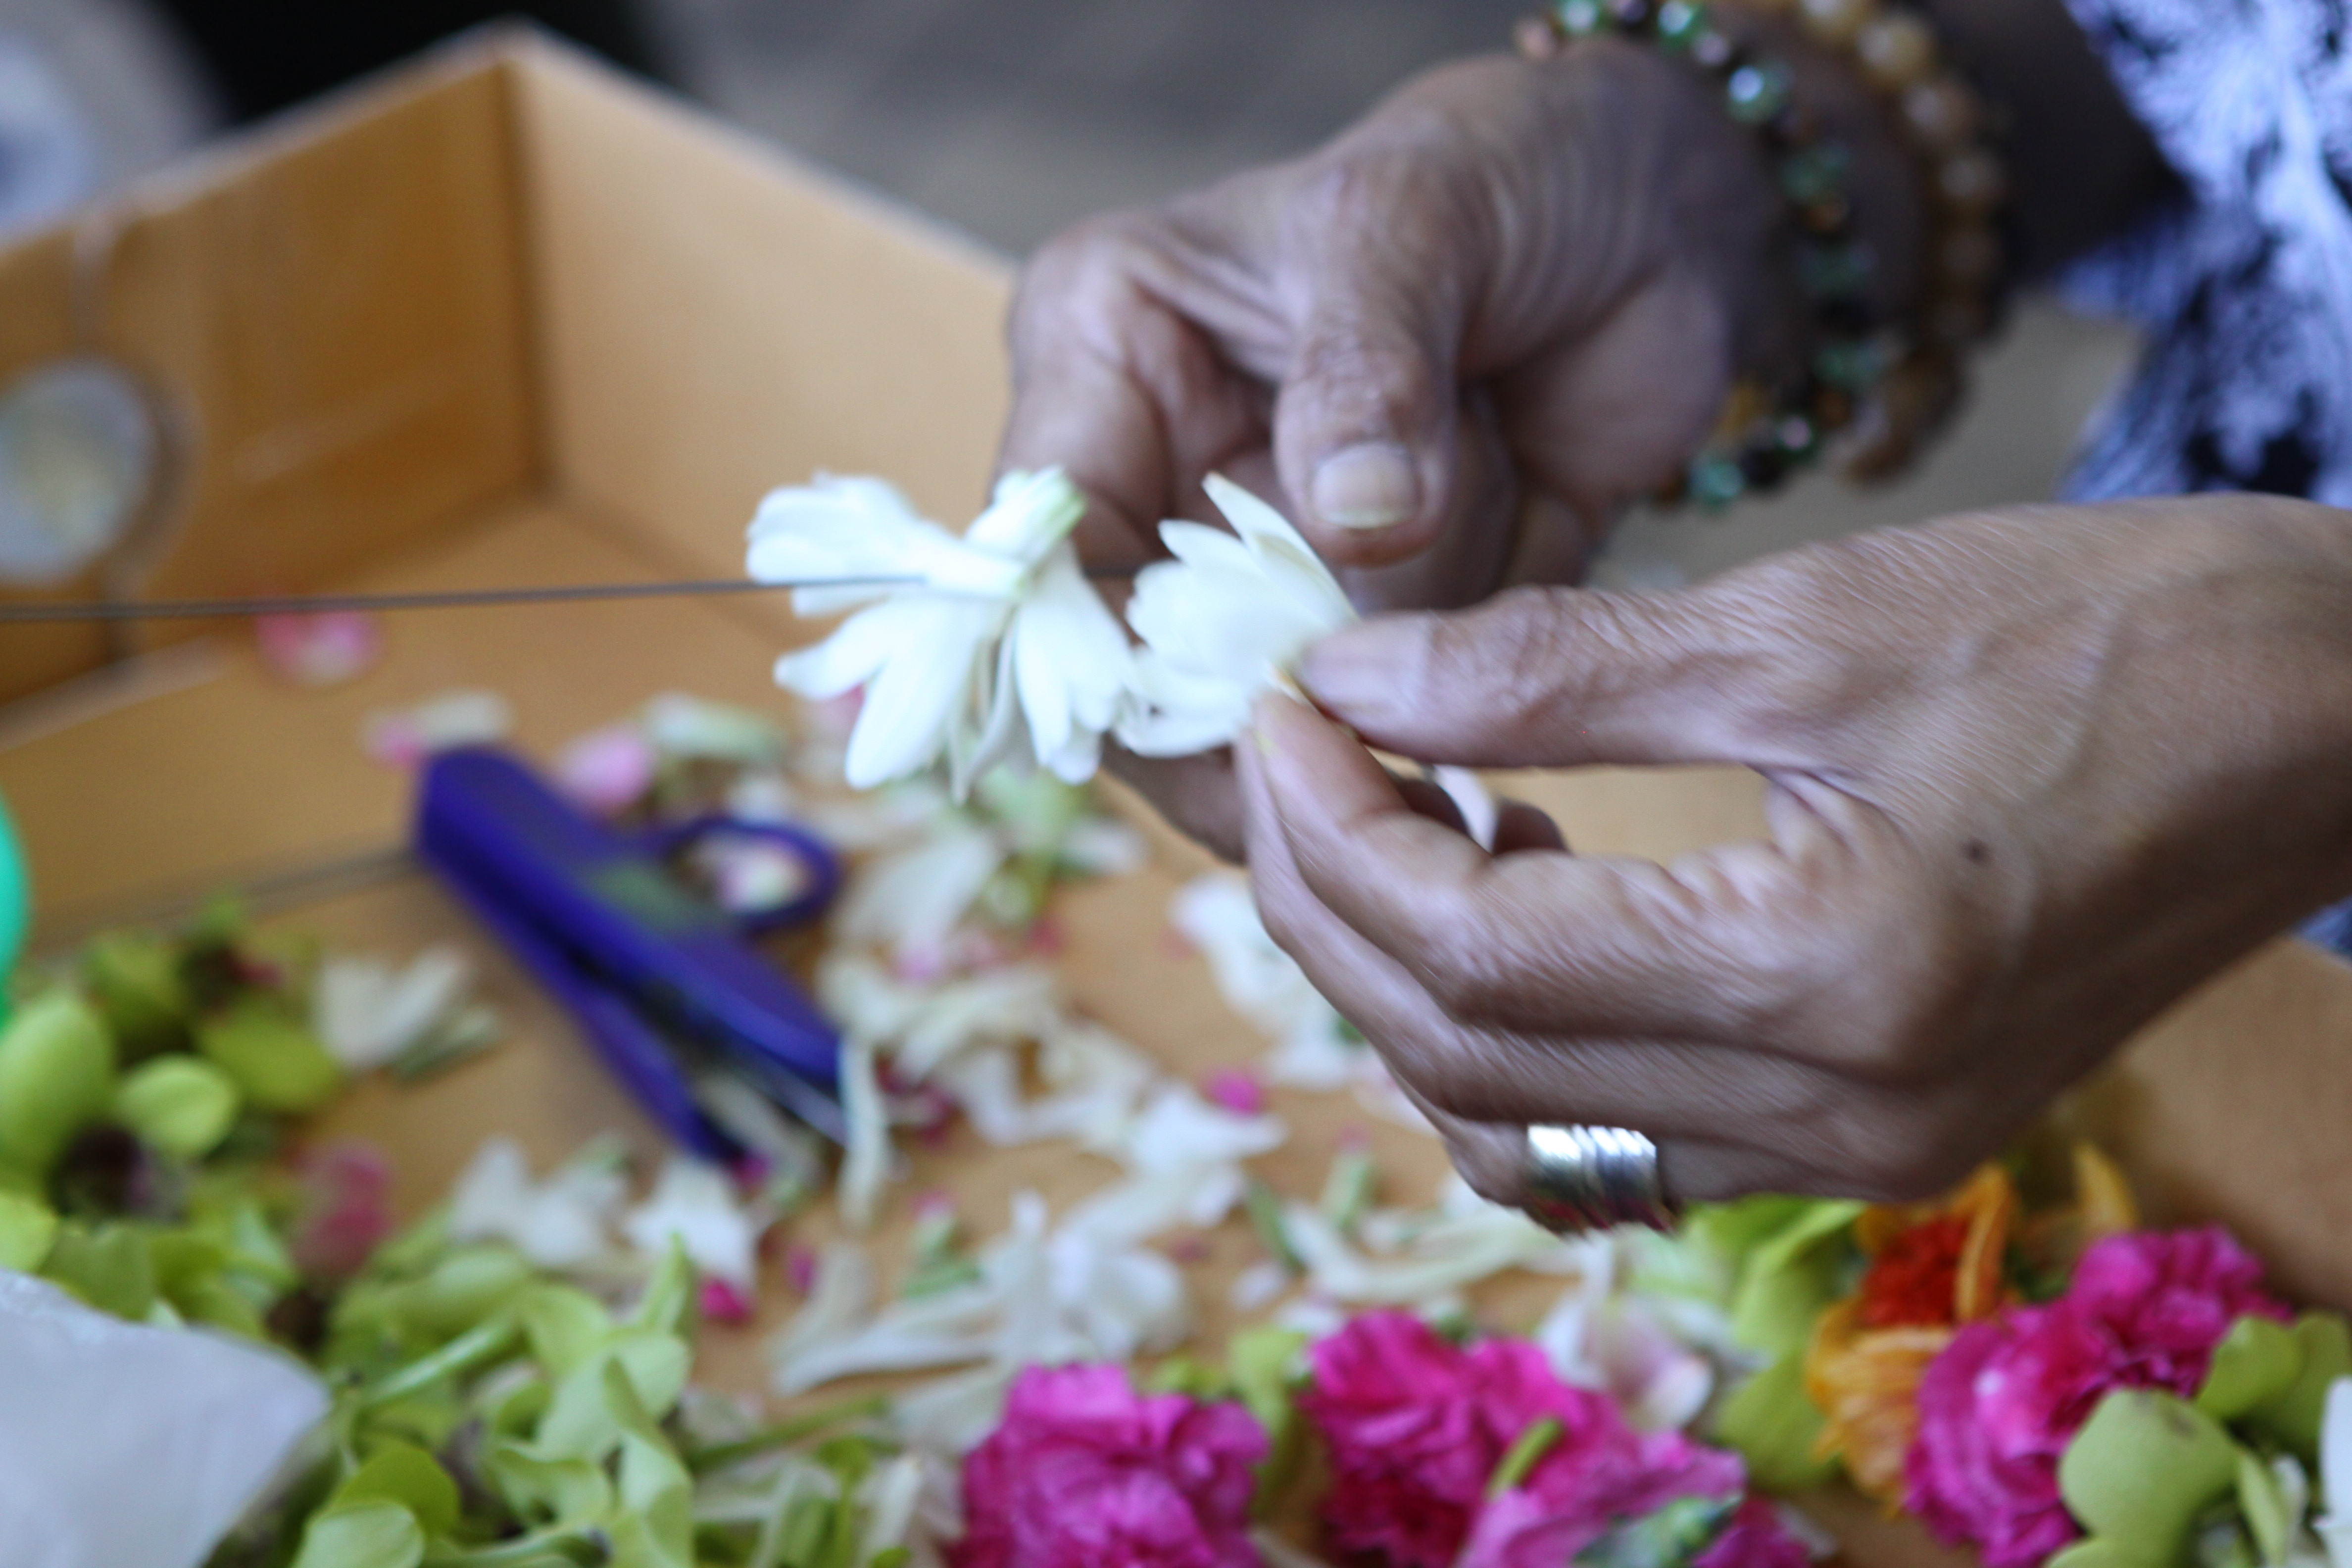 Hawaiian Professional Lei Makers Like These Las Use 8 Inch Long Making Needles And Doubled Lightweight Cotton String